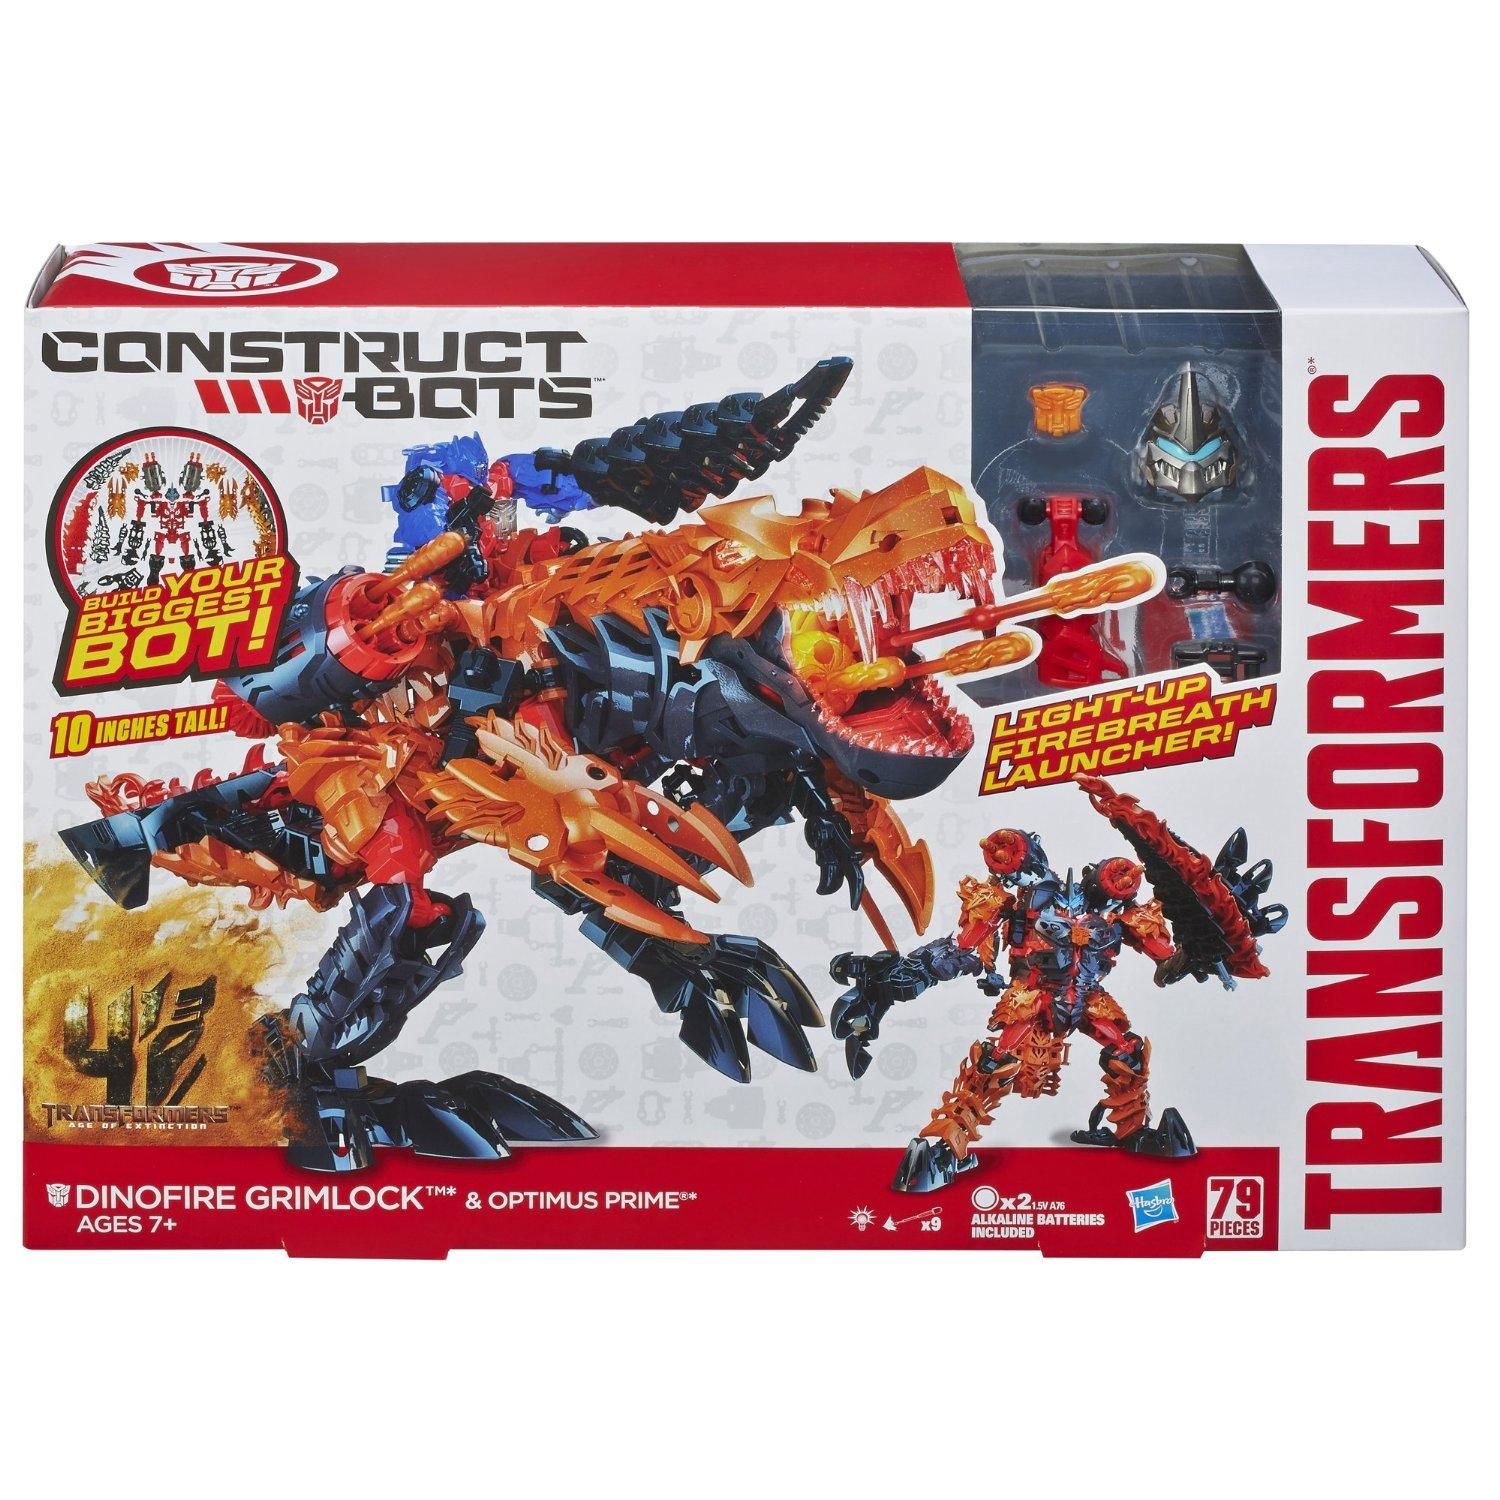 $9.06 Transformers Age of Extinction Construct-Bots Dinofire Grimlock and Optimus Prime Set